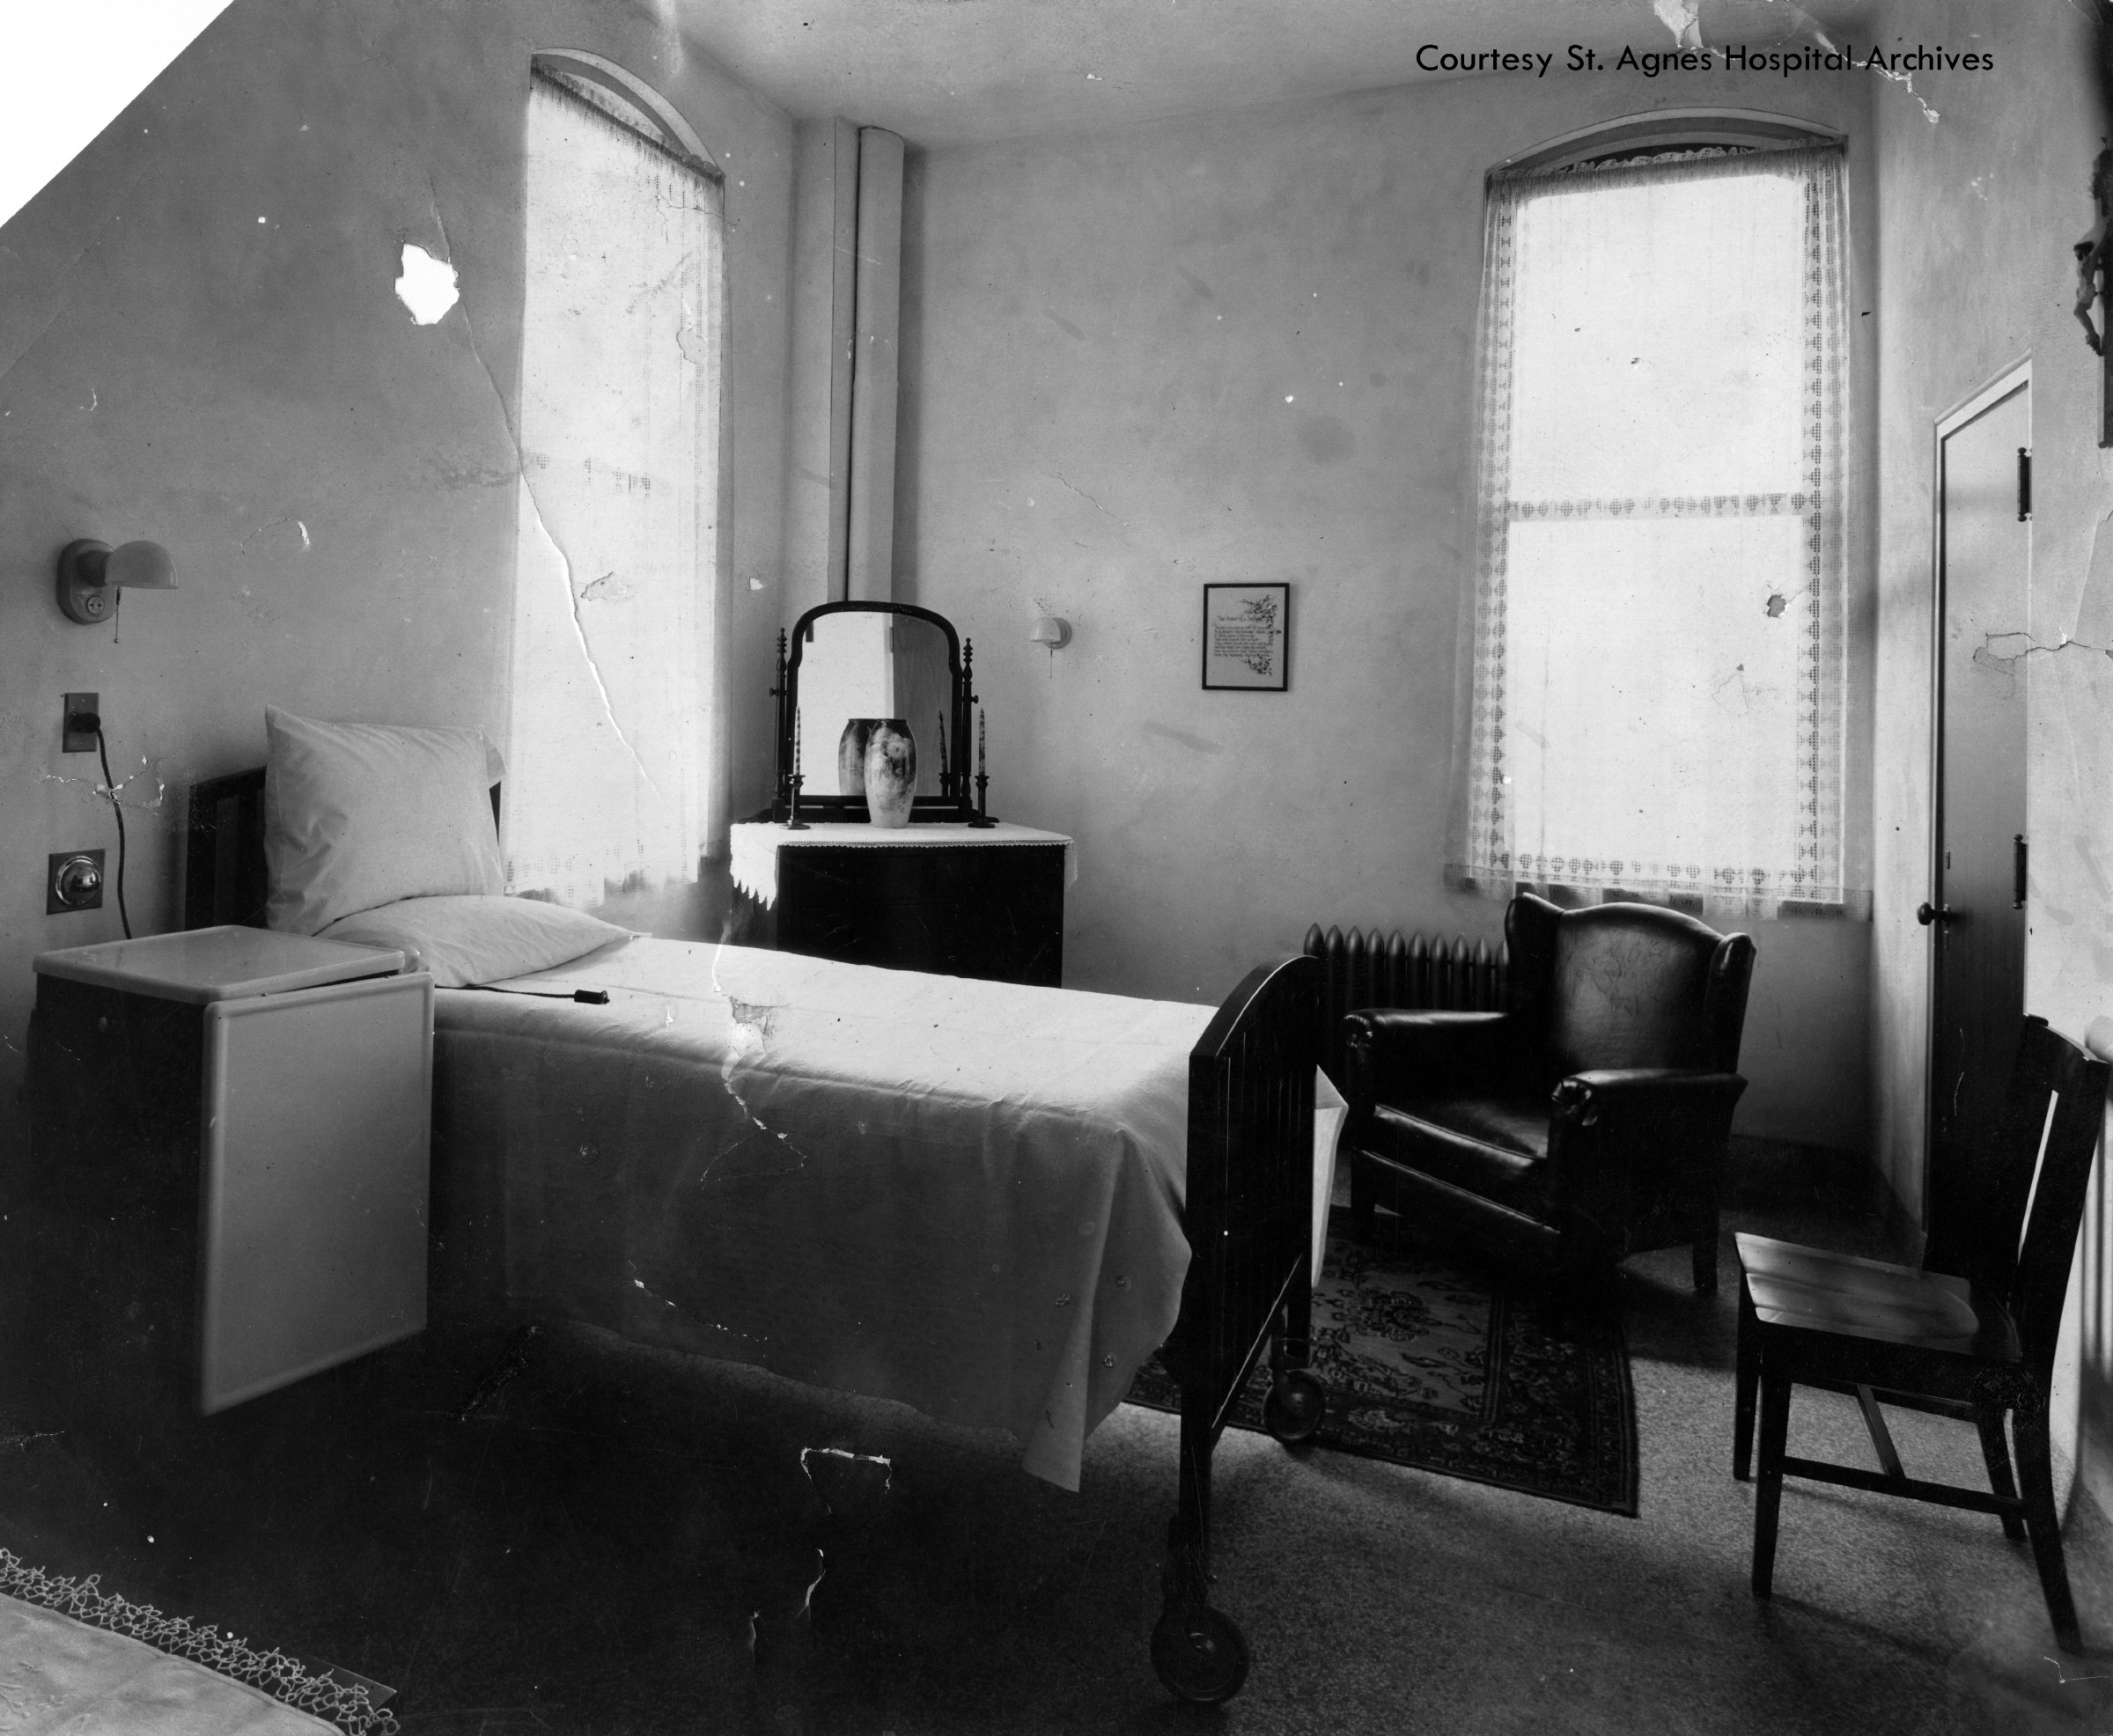 Private room at St. Agnes Hospital, c. 1925.